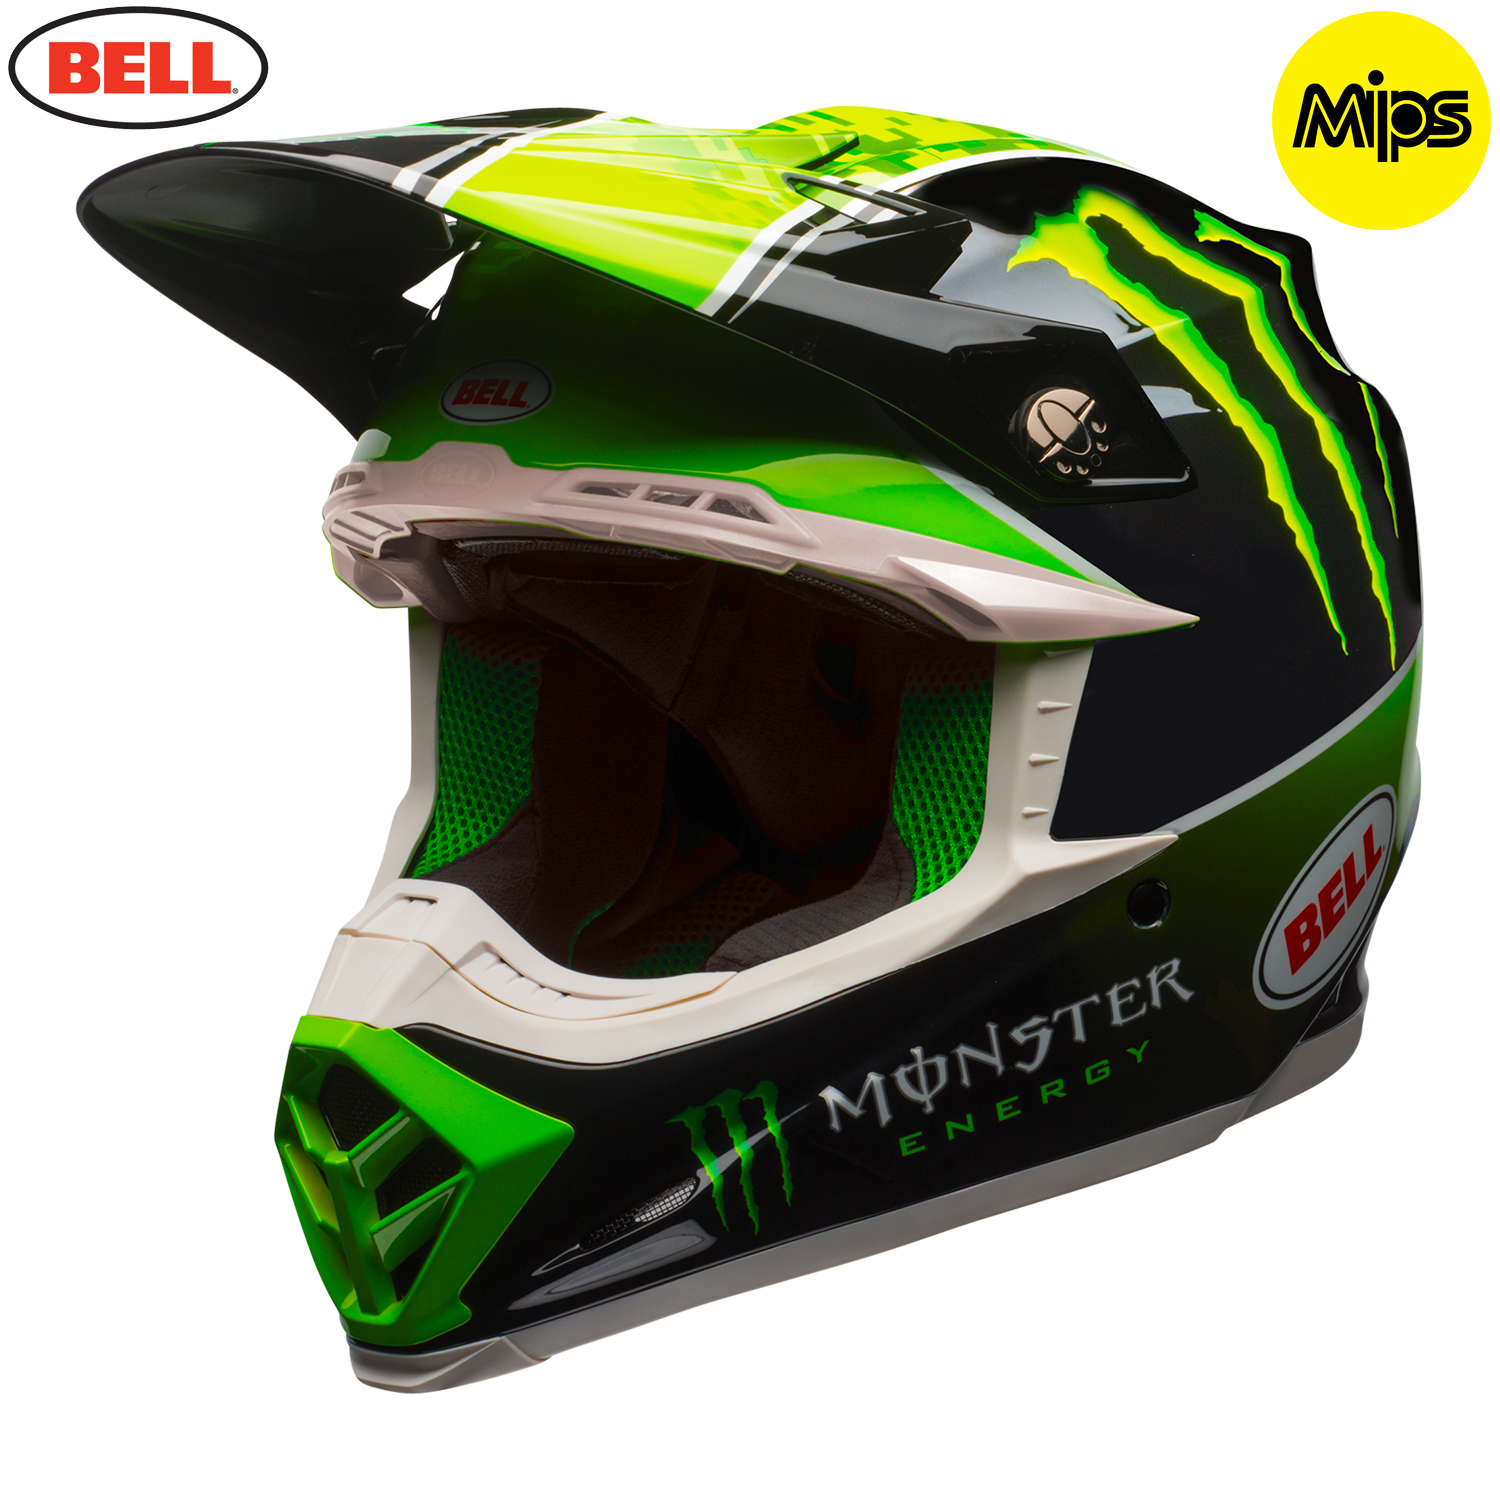 2018 bell moto 9 mips tomac monster energy helmet black green. Black Bedroom Furniture Sets. Home Design Ideas